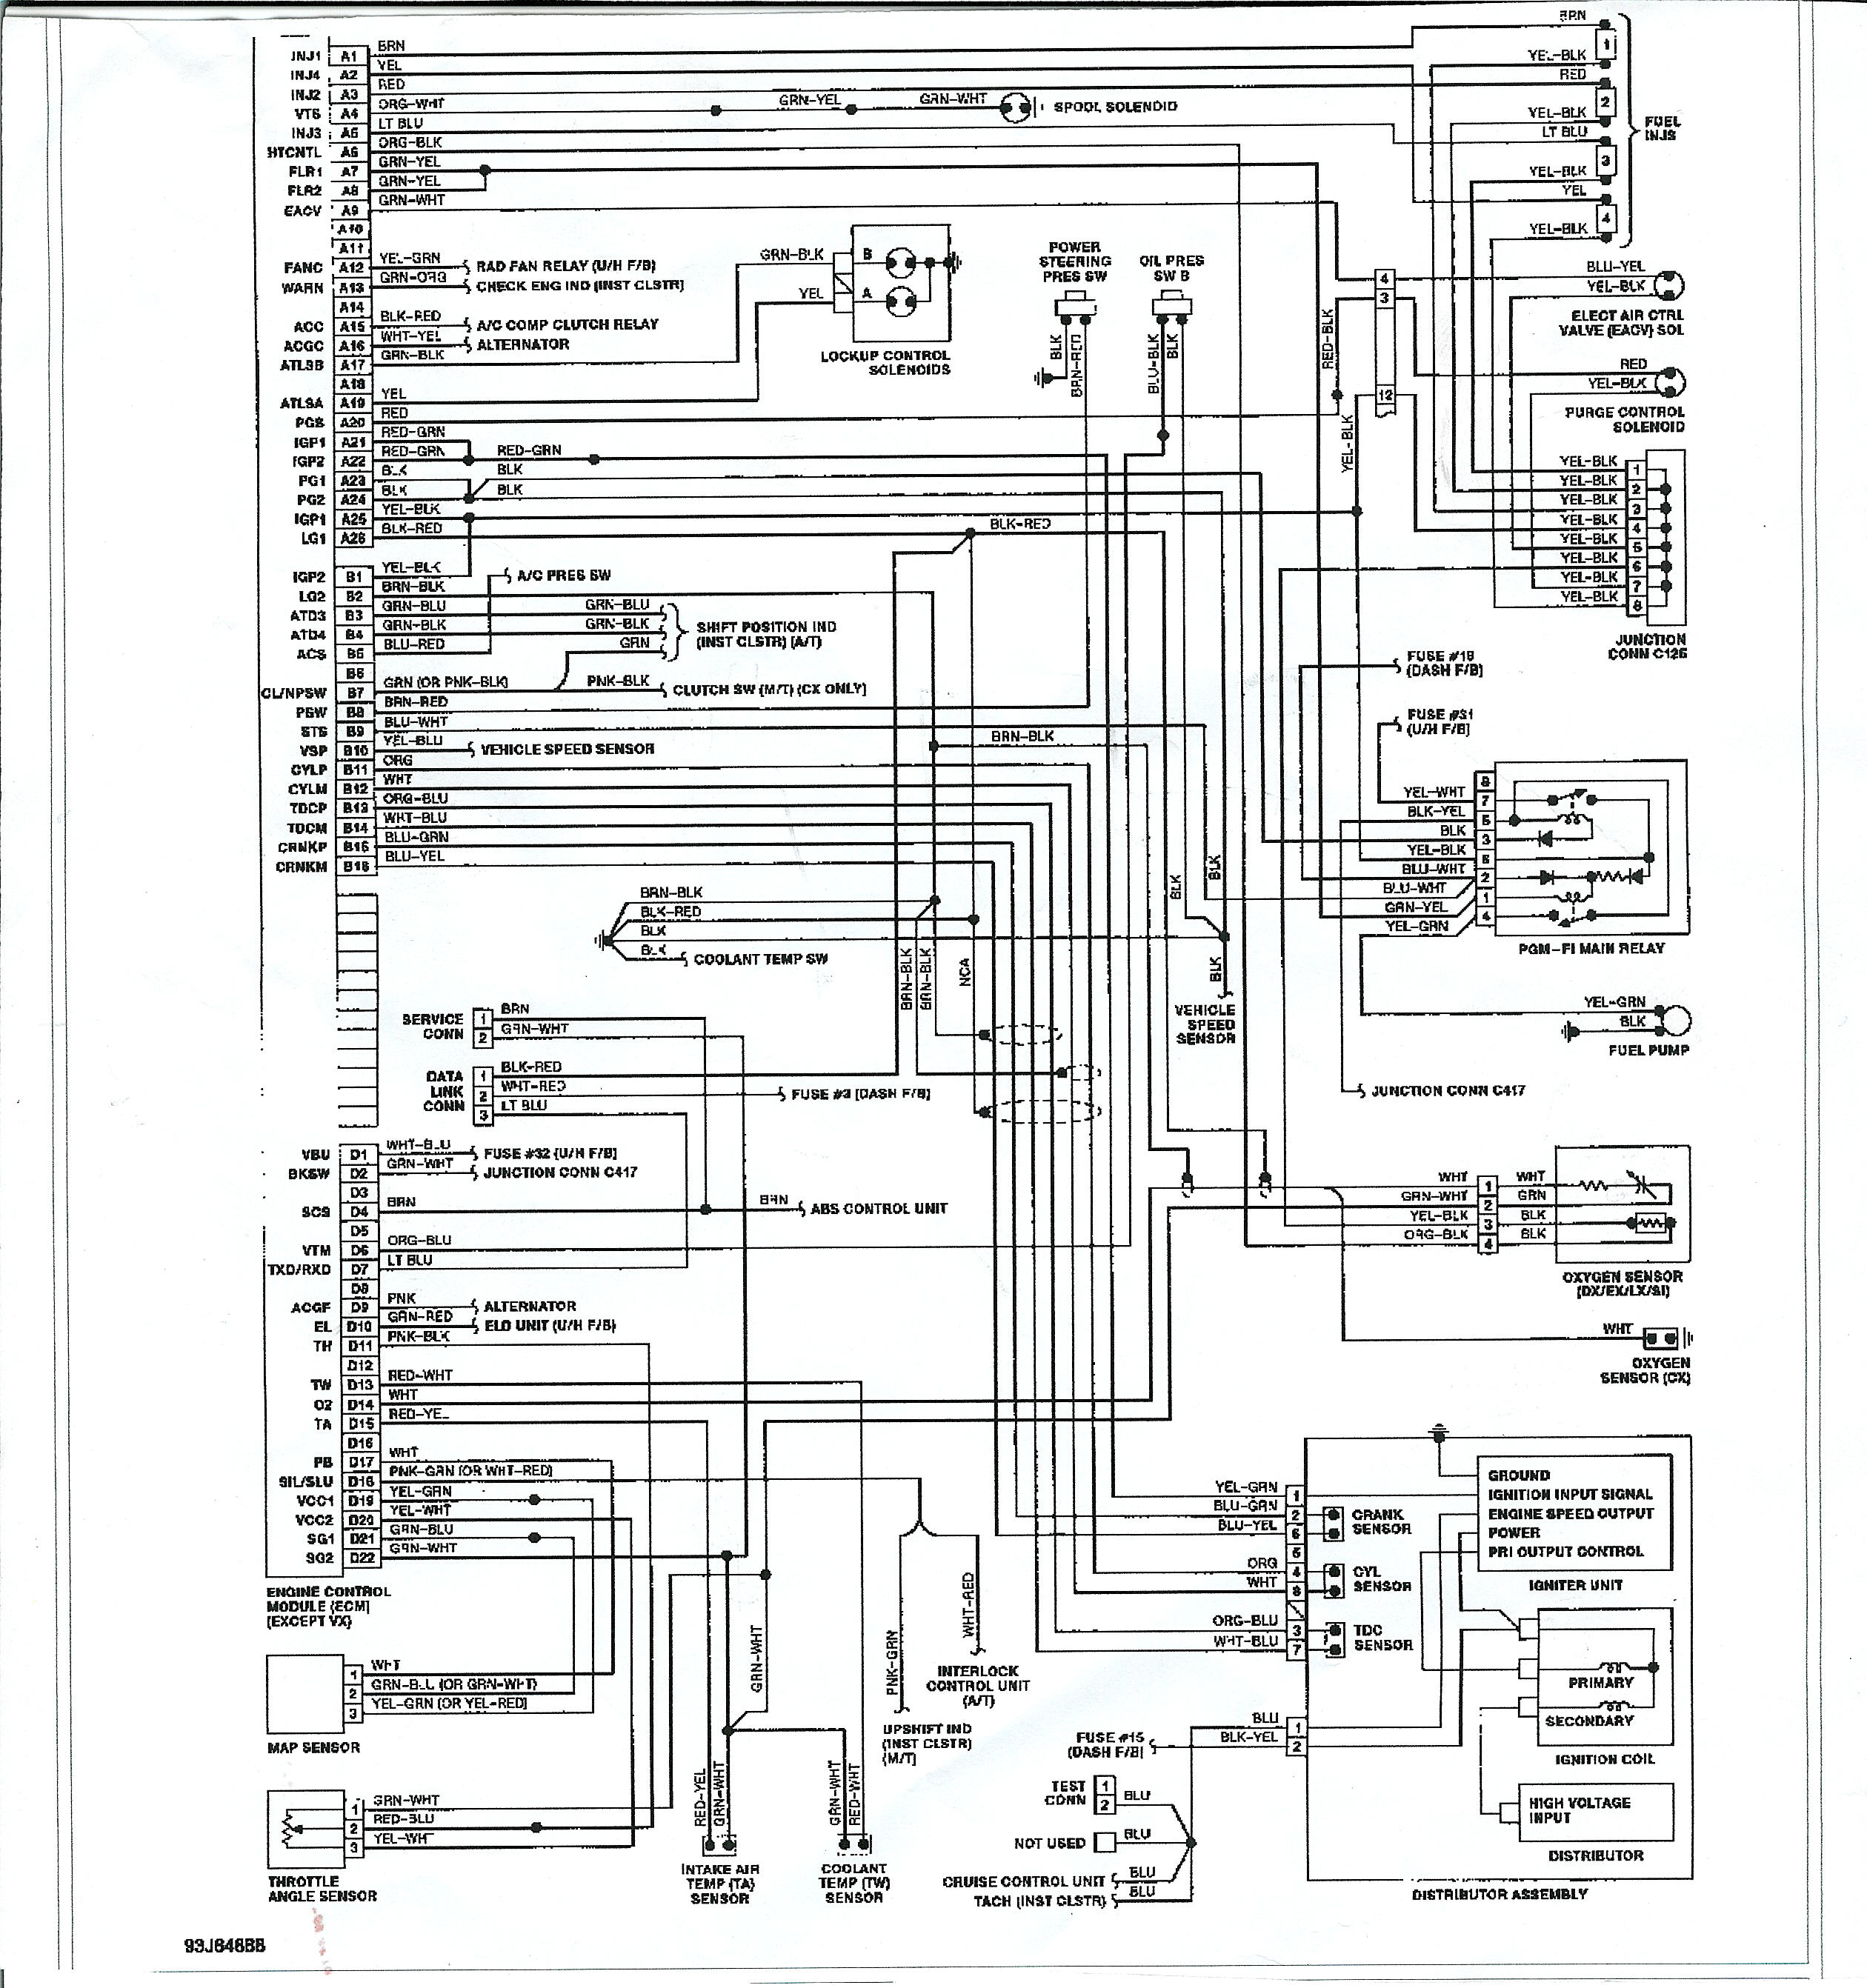 2000 Honda Civic Wiring Schematics, 2000, Free Engine